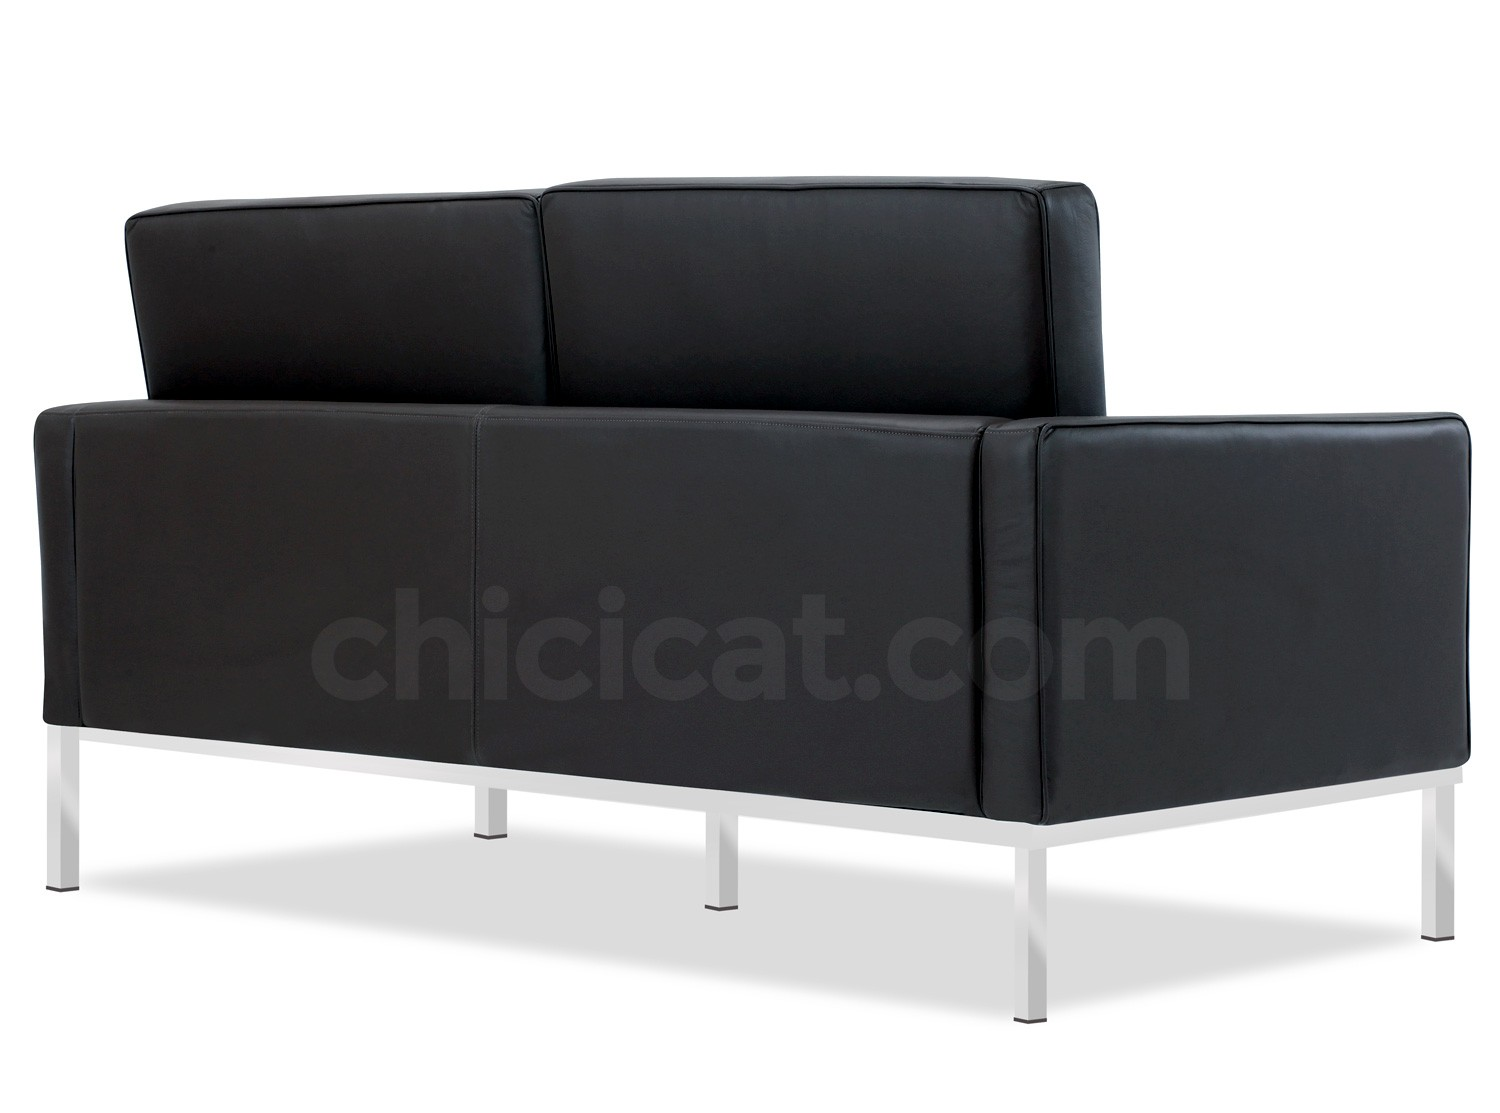 Florence Knoll Sofa 2 Seater Leather Platinum Replica